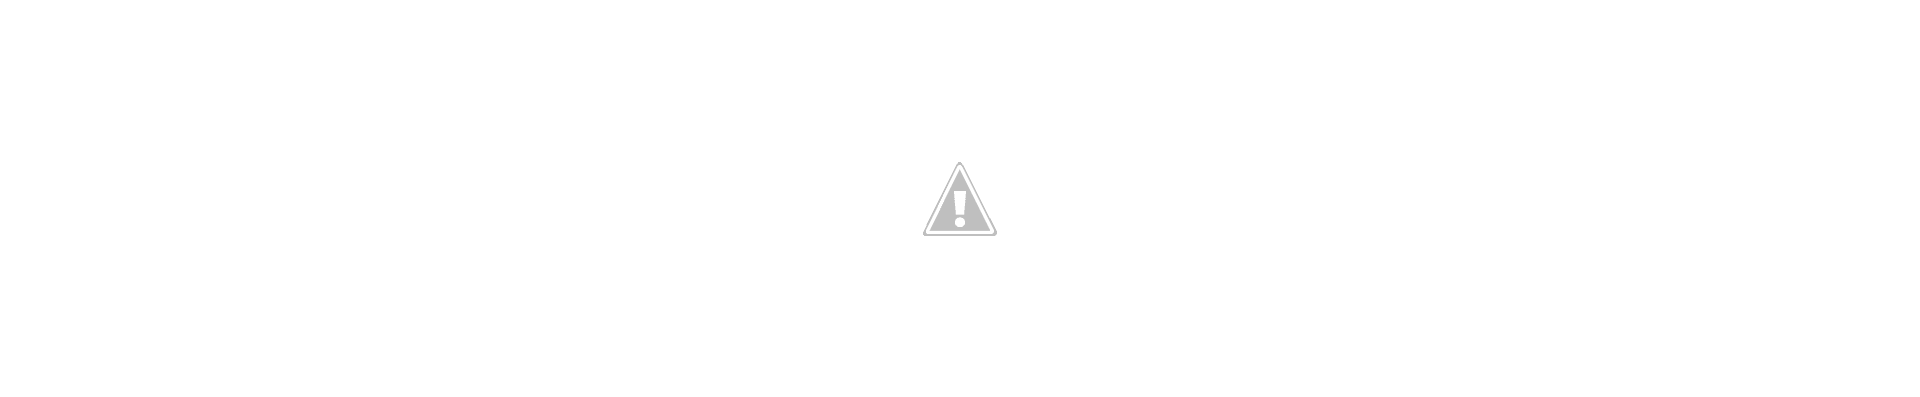 fsj jeep wiring diagram - wiring diagram tags know-usage -  know-usage.discoveriran.it  discoveriran.it